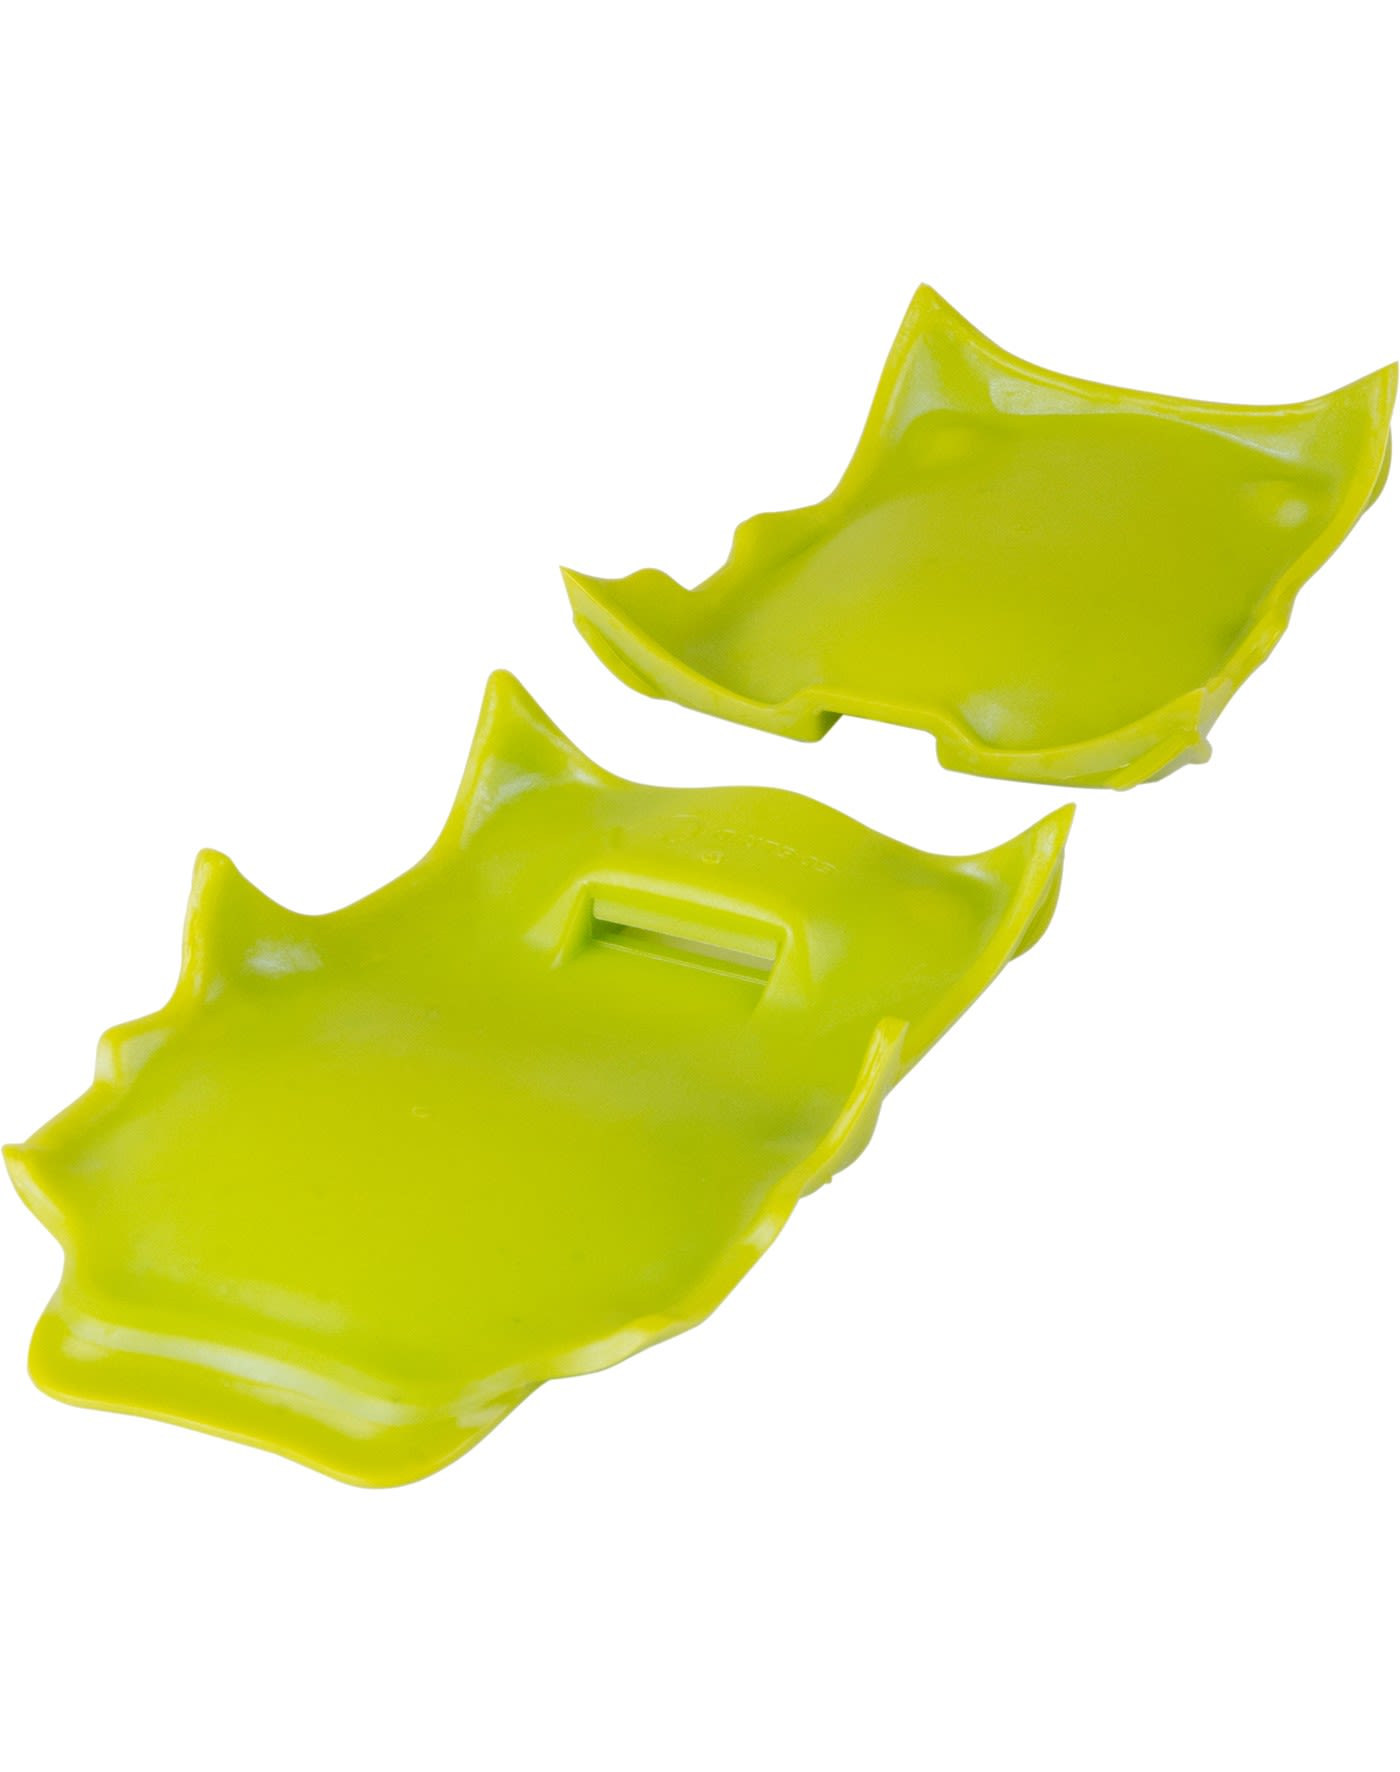 Edelrid Anti Shark Gelb, One Size -Farbe Night -Oasis, One Size